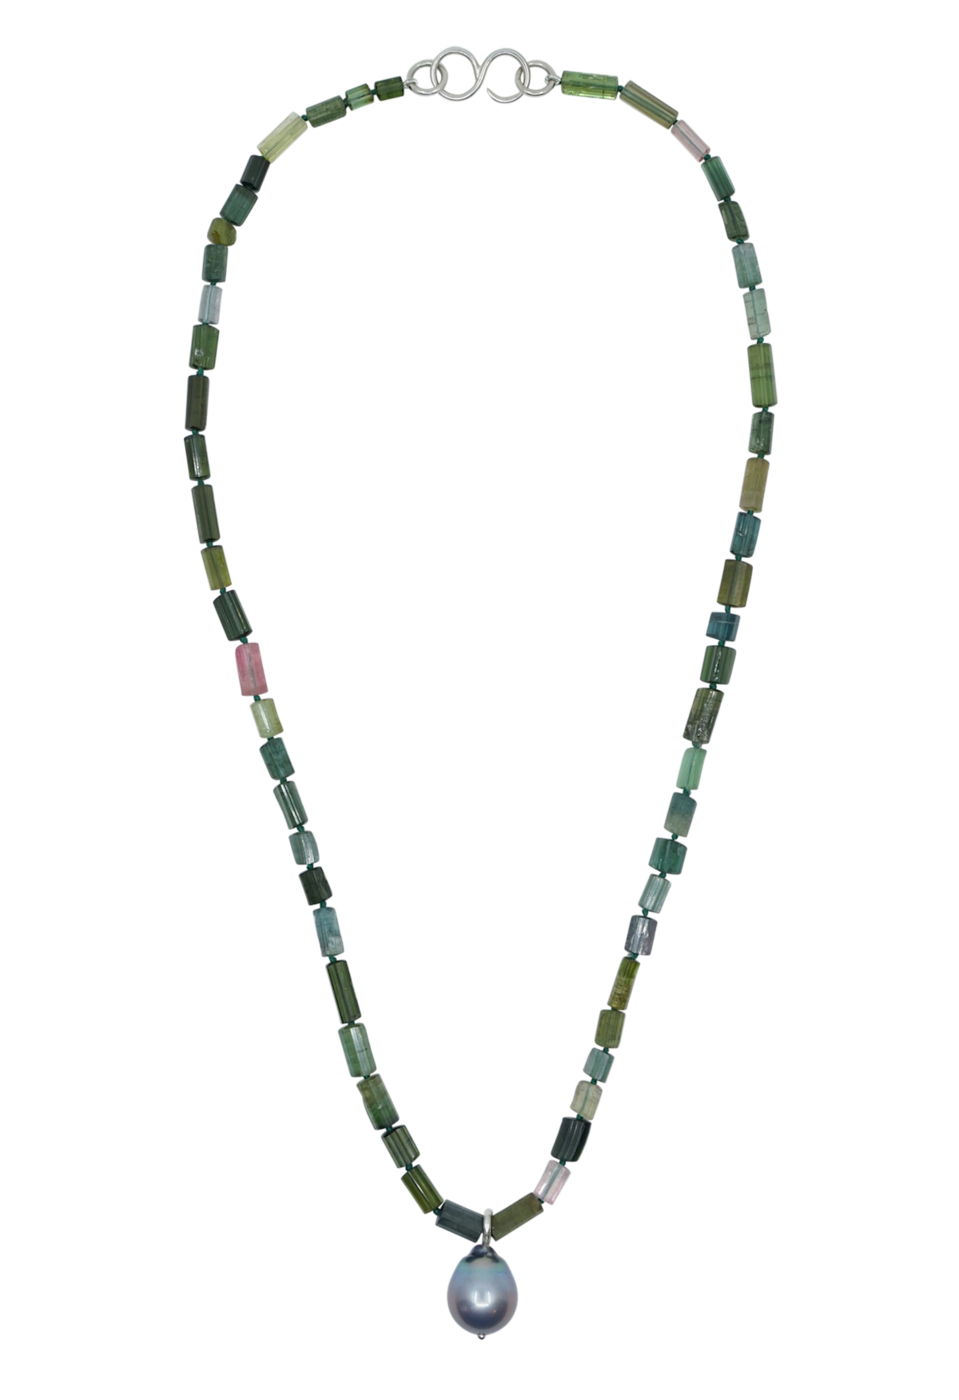 """<p><strong>Camille Beinhorn </strong></p><p>camillebeinhornjewelry.com</p><p><strong>$850.00</strong></p><p><a href=""""https://camillebeinhornjewelry.com/products/blue-tourmaline-and-pearl-necklace"""" rel=""""nofollow noopener"""" target=""""_blank"""" data-ylk=""""slk:Shop Now"""" class=""""link rapid-noclick-resp"""">Shop Now</a></p><p>All of Camille Beinhorn's pieces are crafted in New York City with recycled metals. This piece features tourmaline and Tahitian pearl, and the beads are hand-knotted with silk thread. It's perfect for your favorite friend.</p>"""